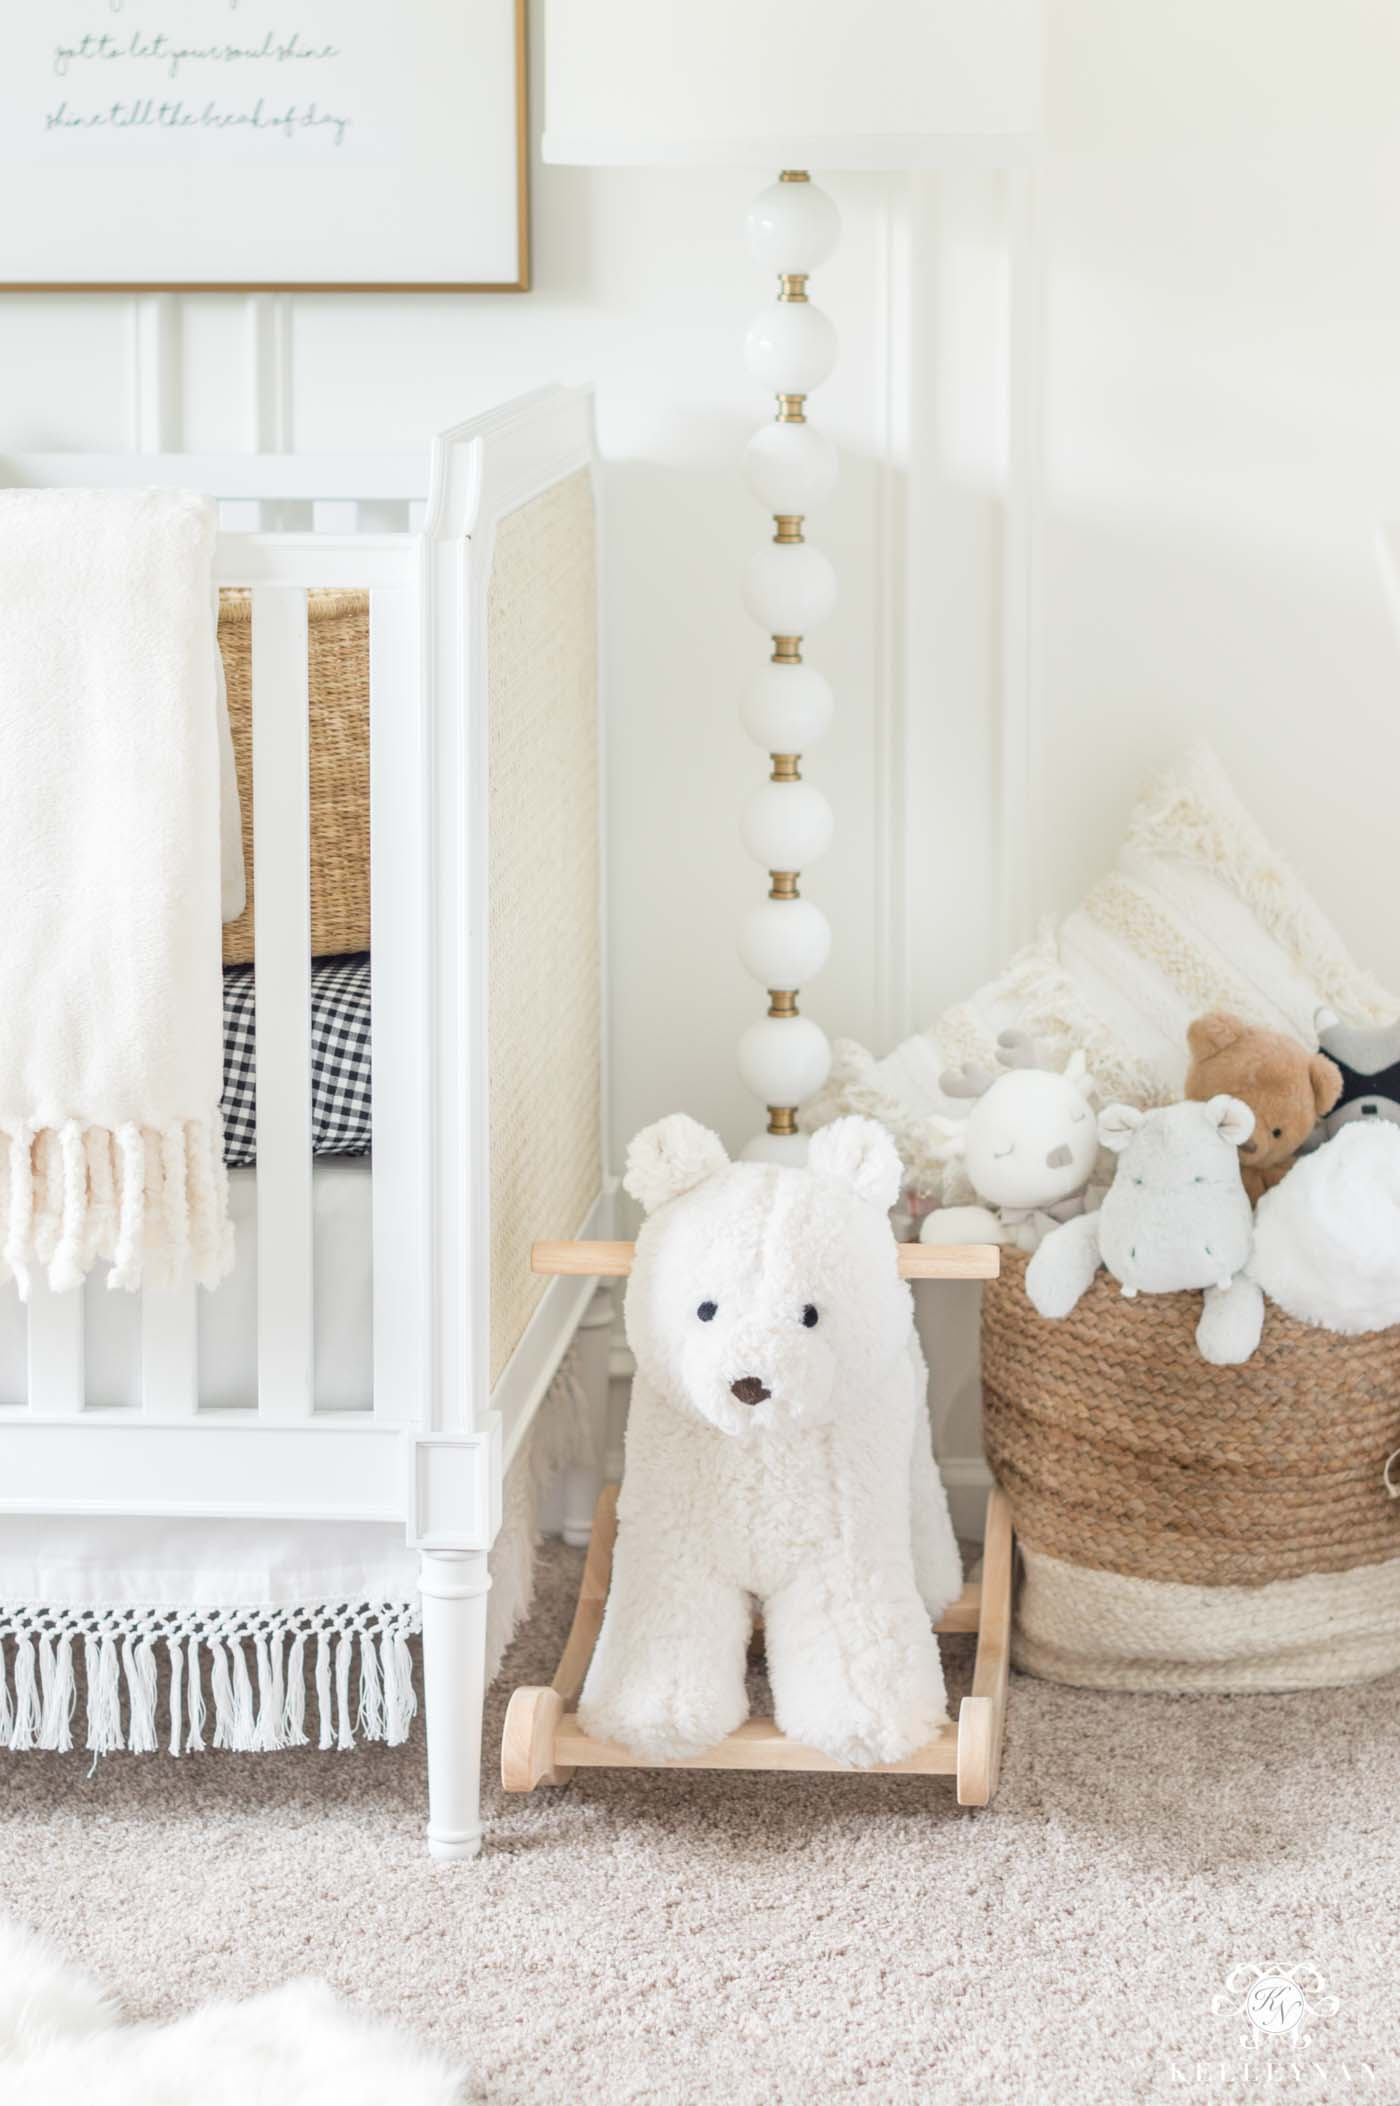 Gender neutral nursery decor must-haves